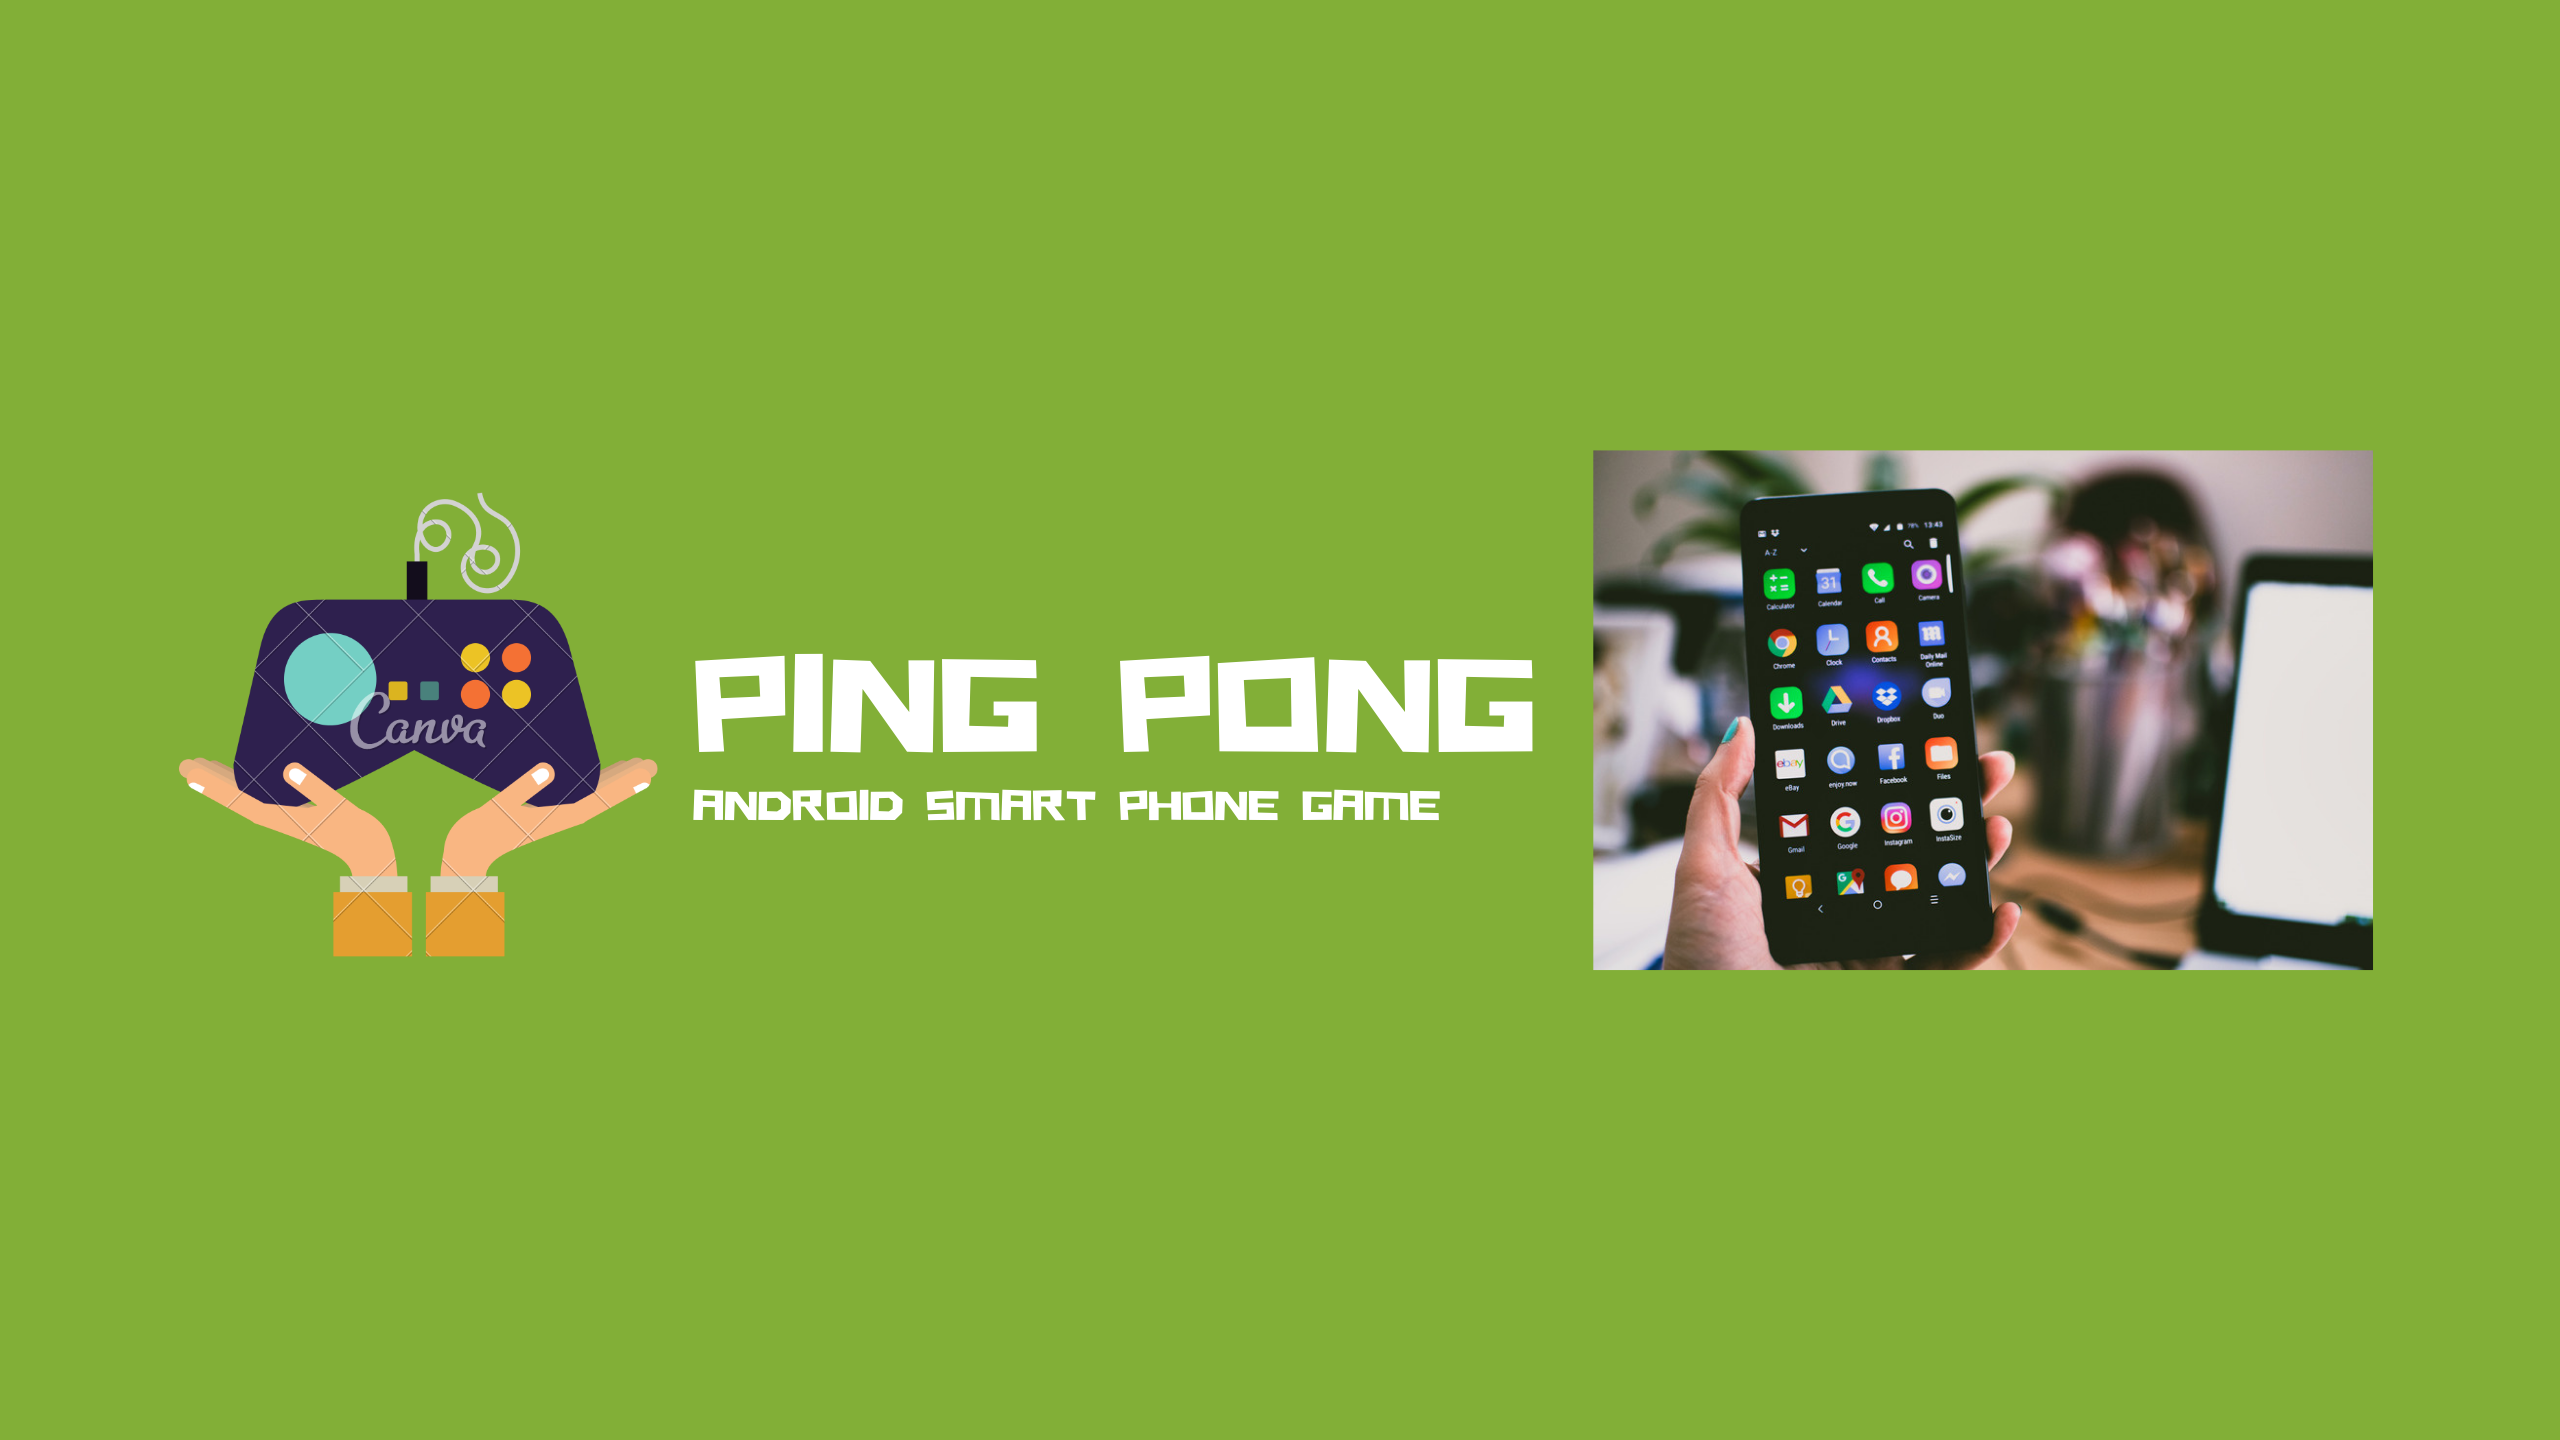 Ping pong Android Game